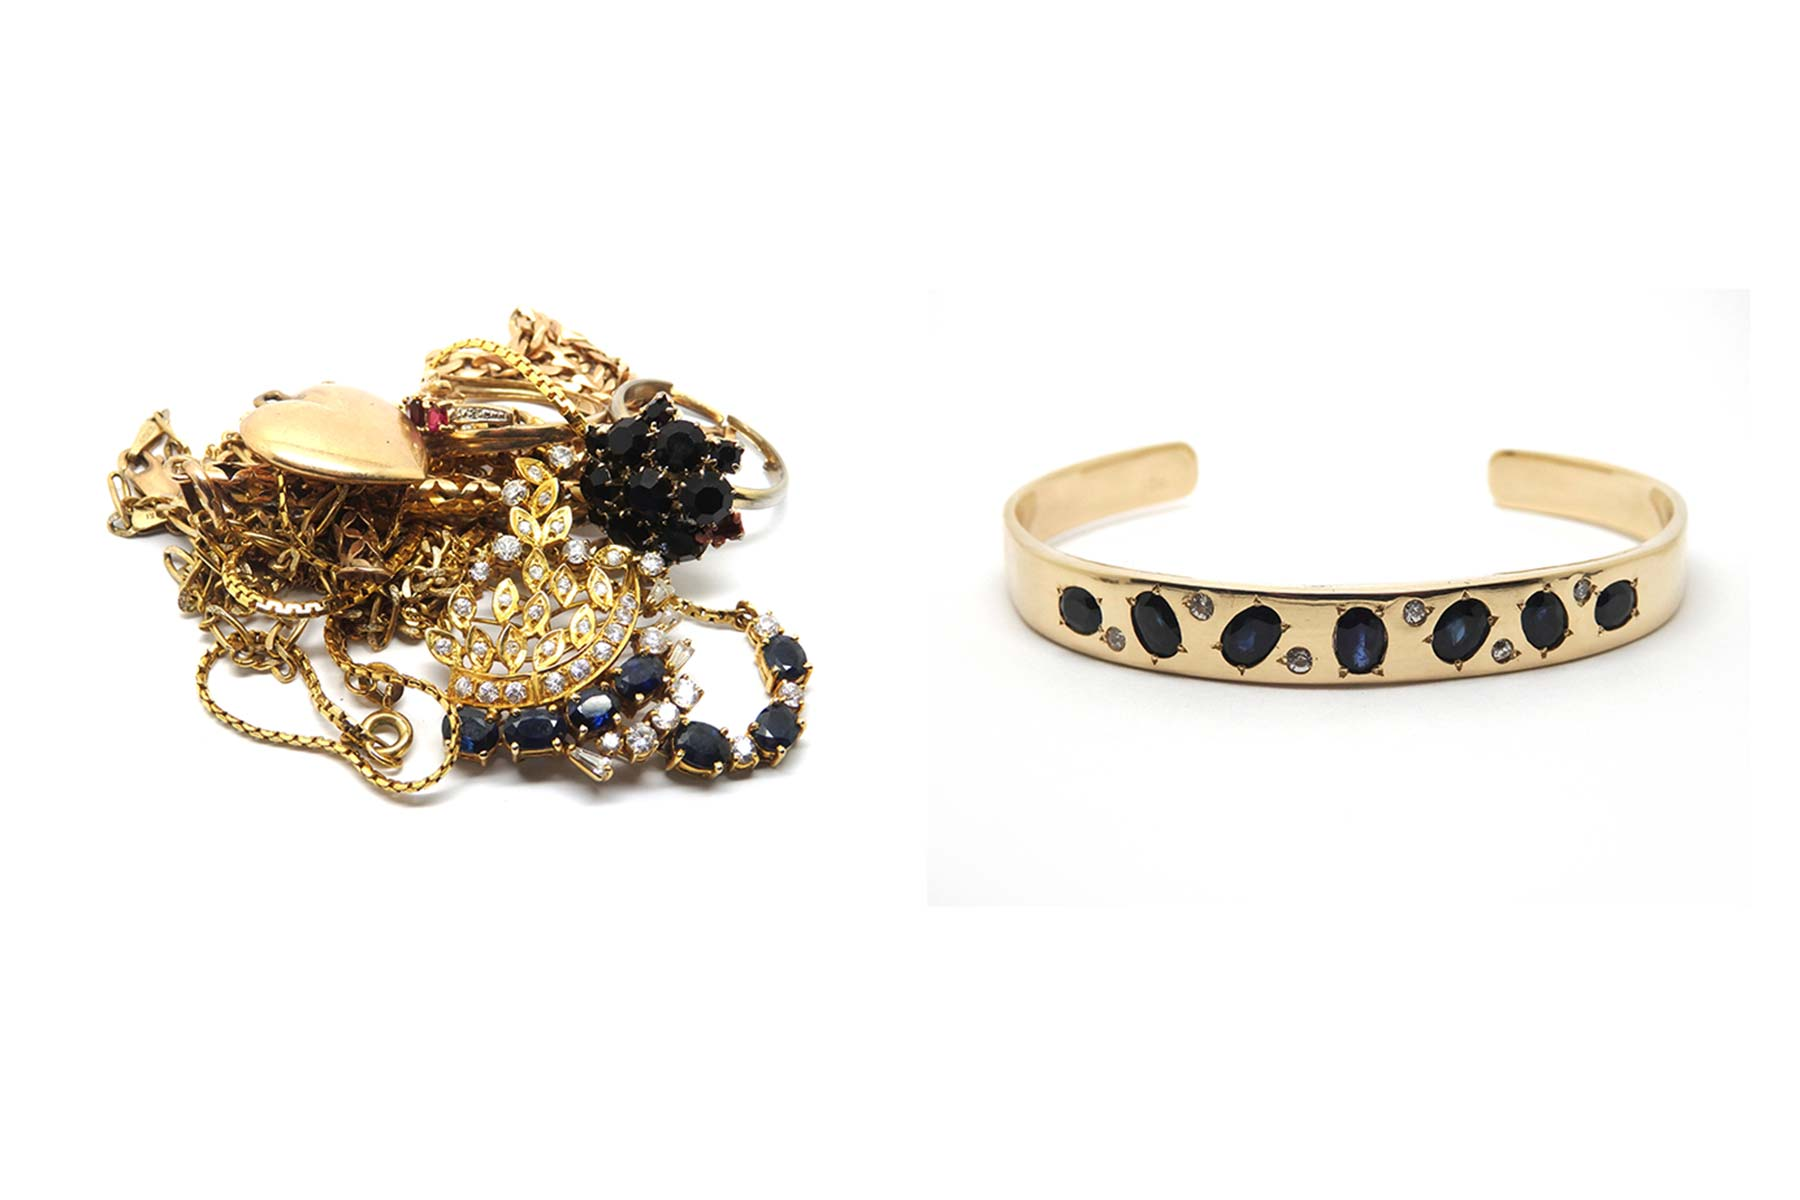 Using the gold, sapphires and clear stones a solid cuff was made and stones set into a random design